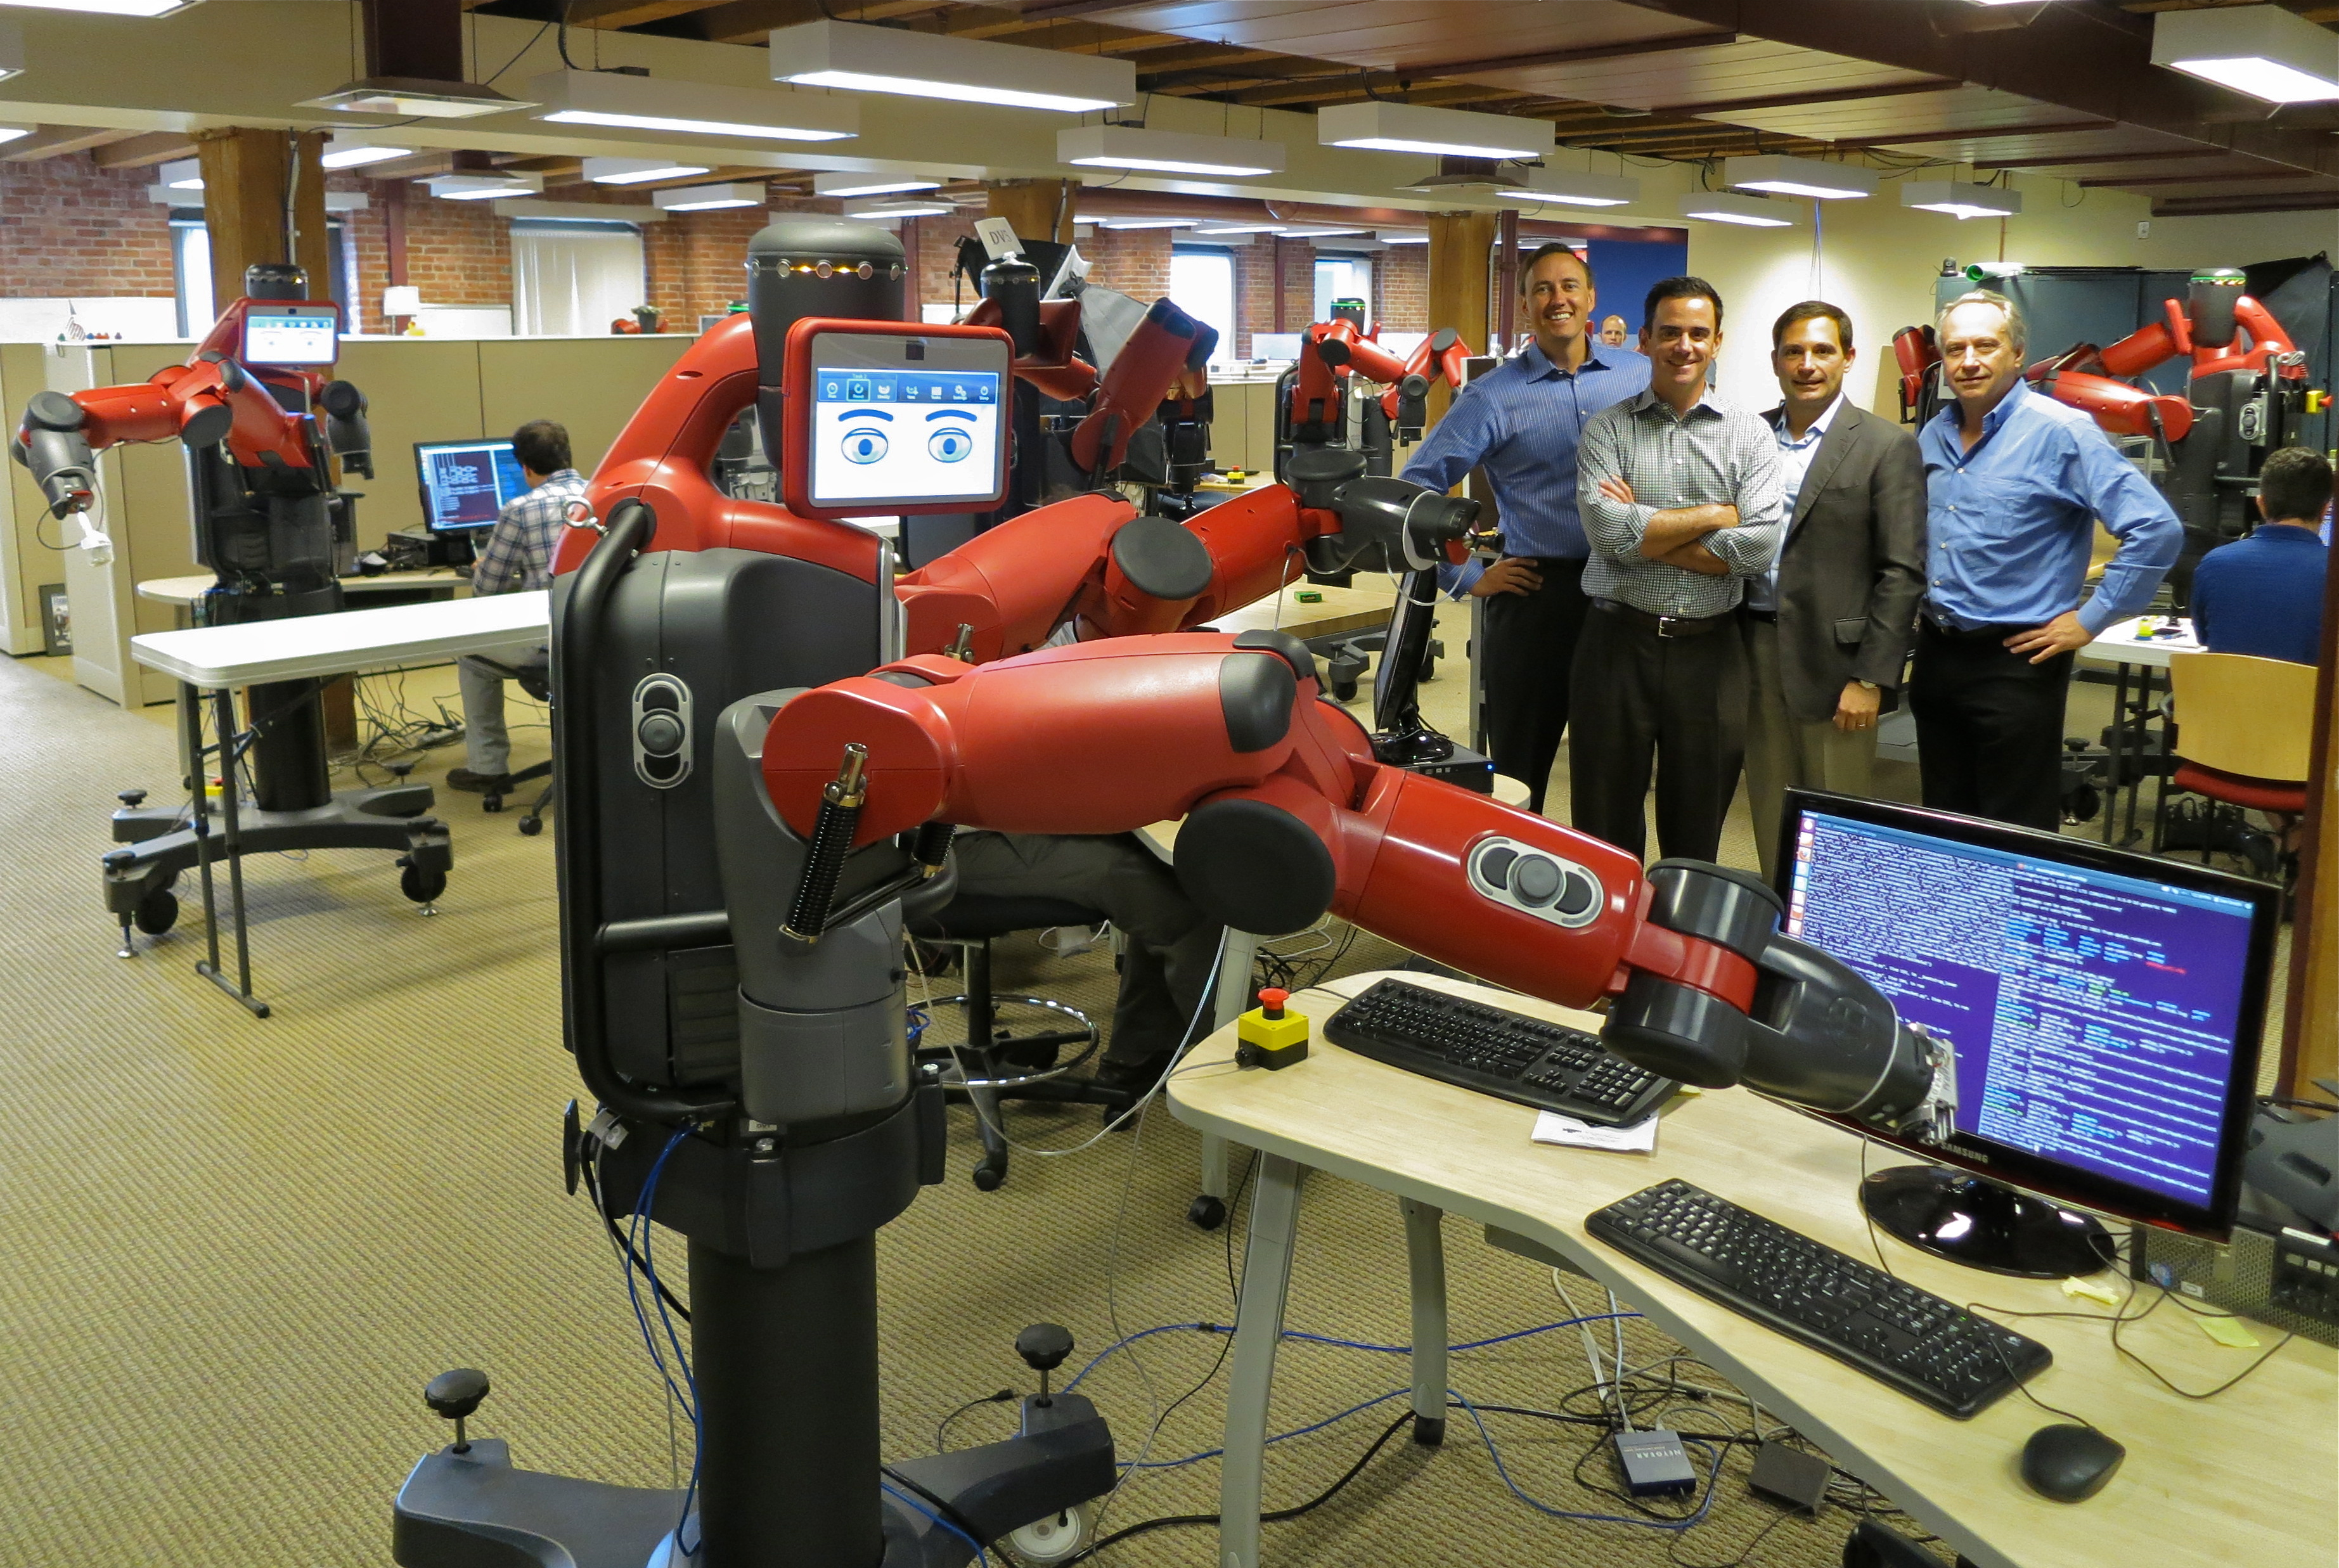 The rise in robotics: It's time for a shift in debate